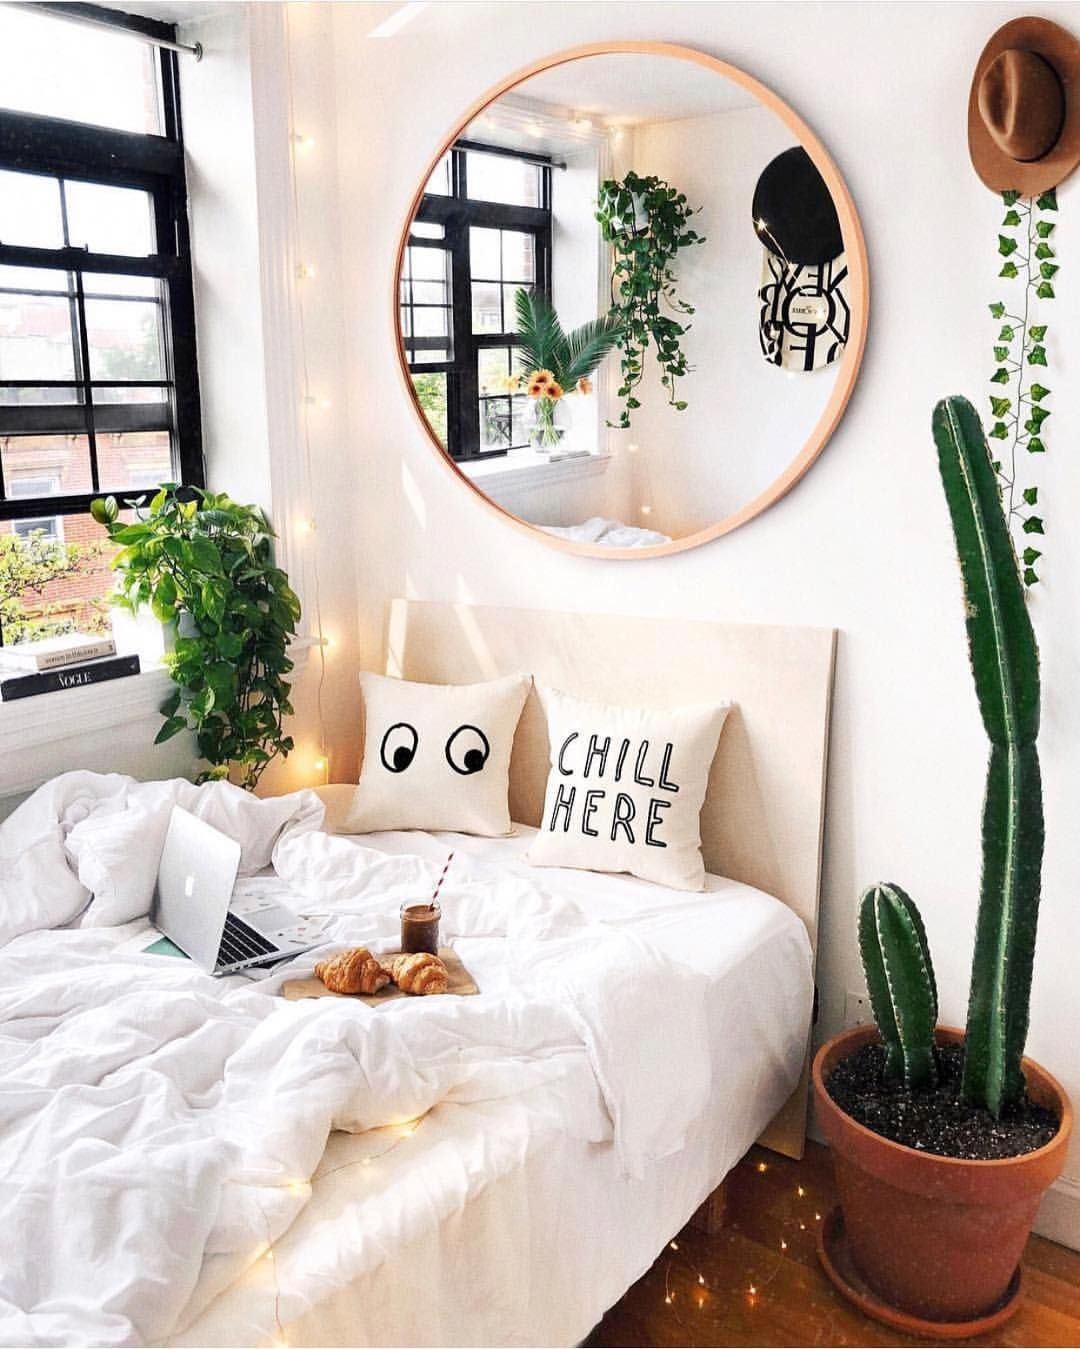 "American Threads Nashville on Instagram: ""Would gladly chill here all weekend - serious bedroom goals from @viktoria.dahlberg ⭐️"